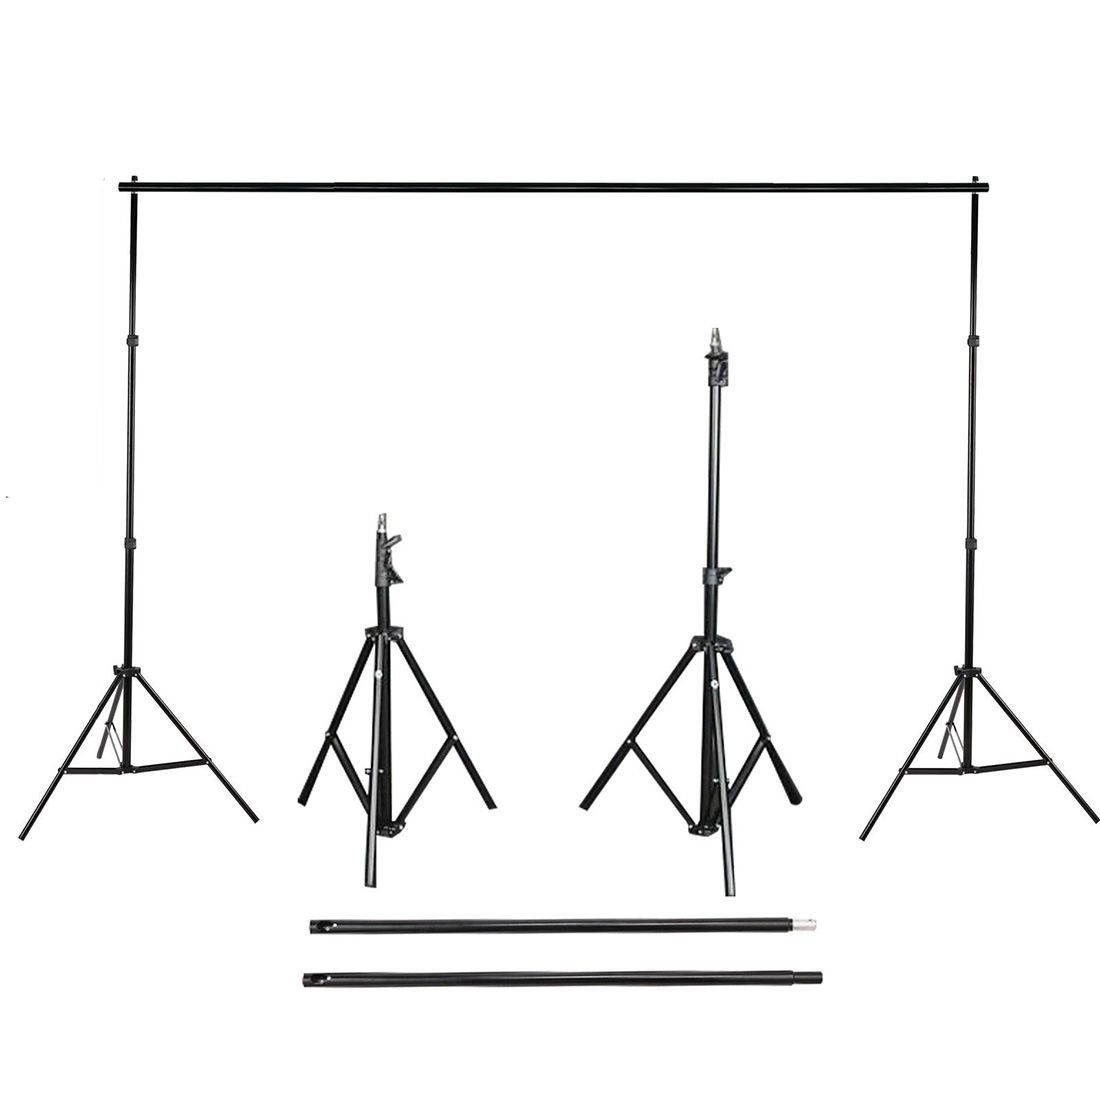 Top Deals 2.8m x 3m Photo Studio Background Backdrop Support Stand Kit + Free Carry Bag сумка nike studio kit m ba4914 007